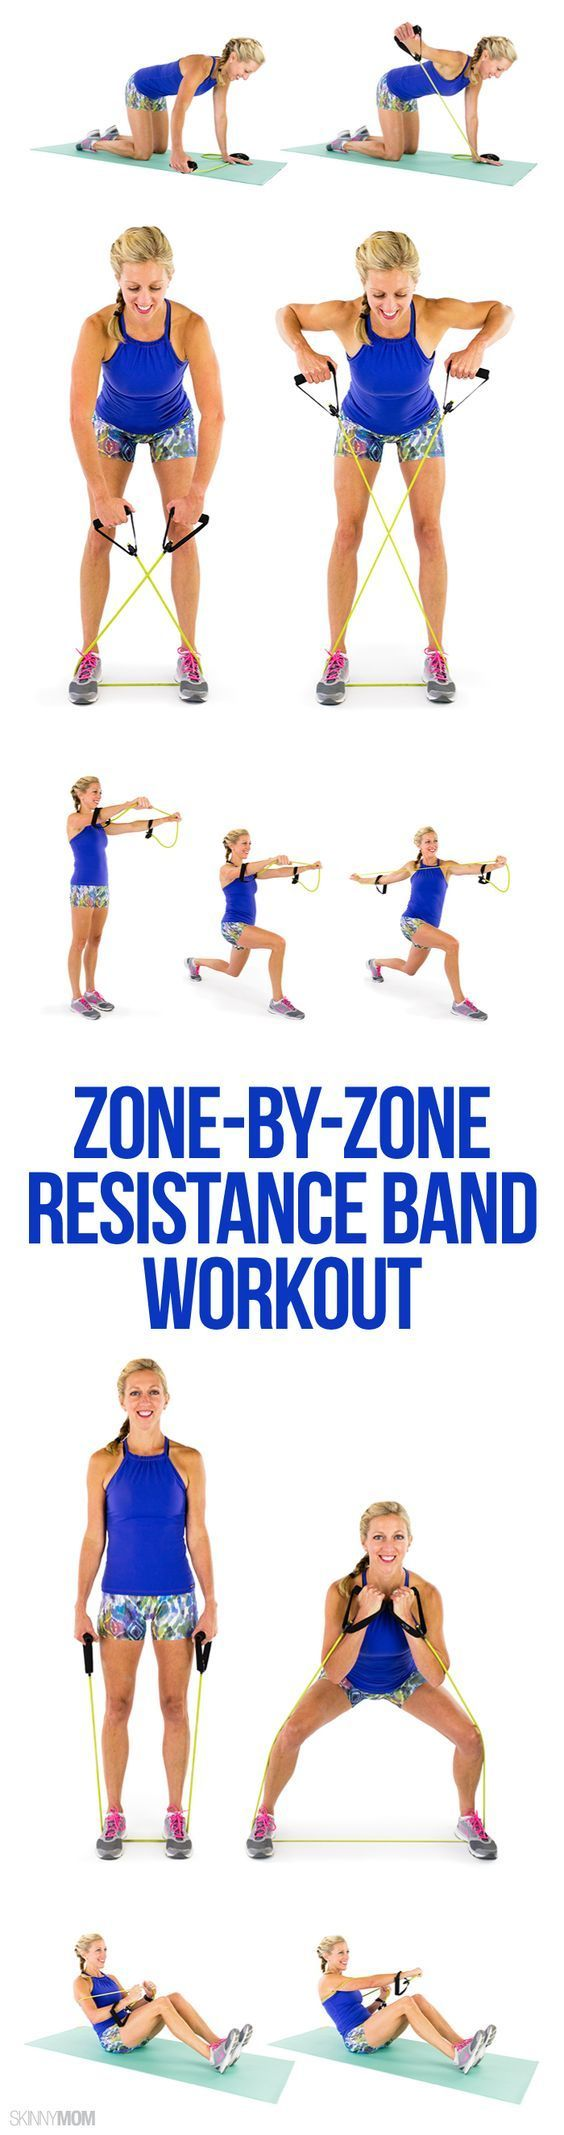 weight loss resistance training